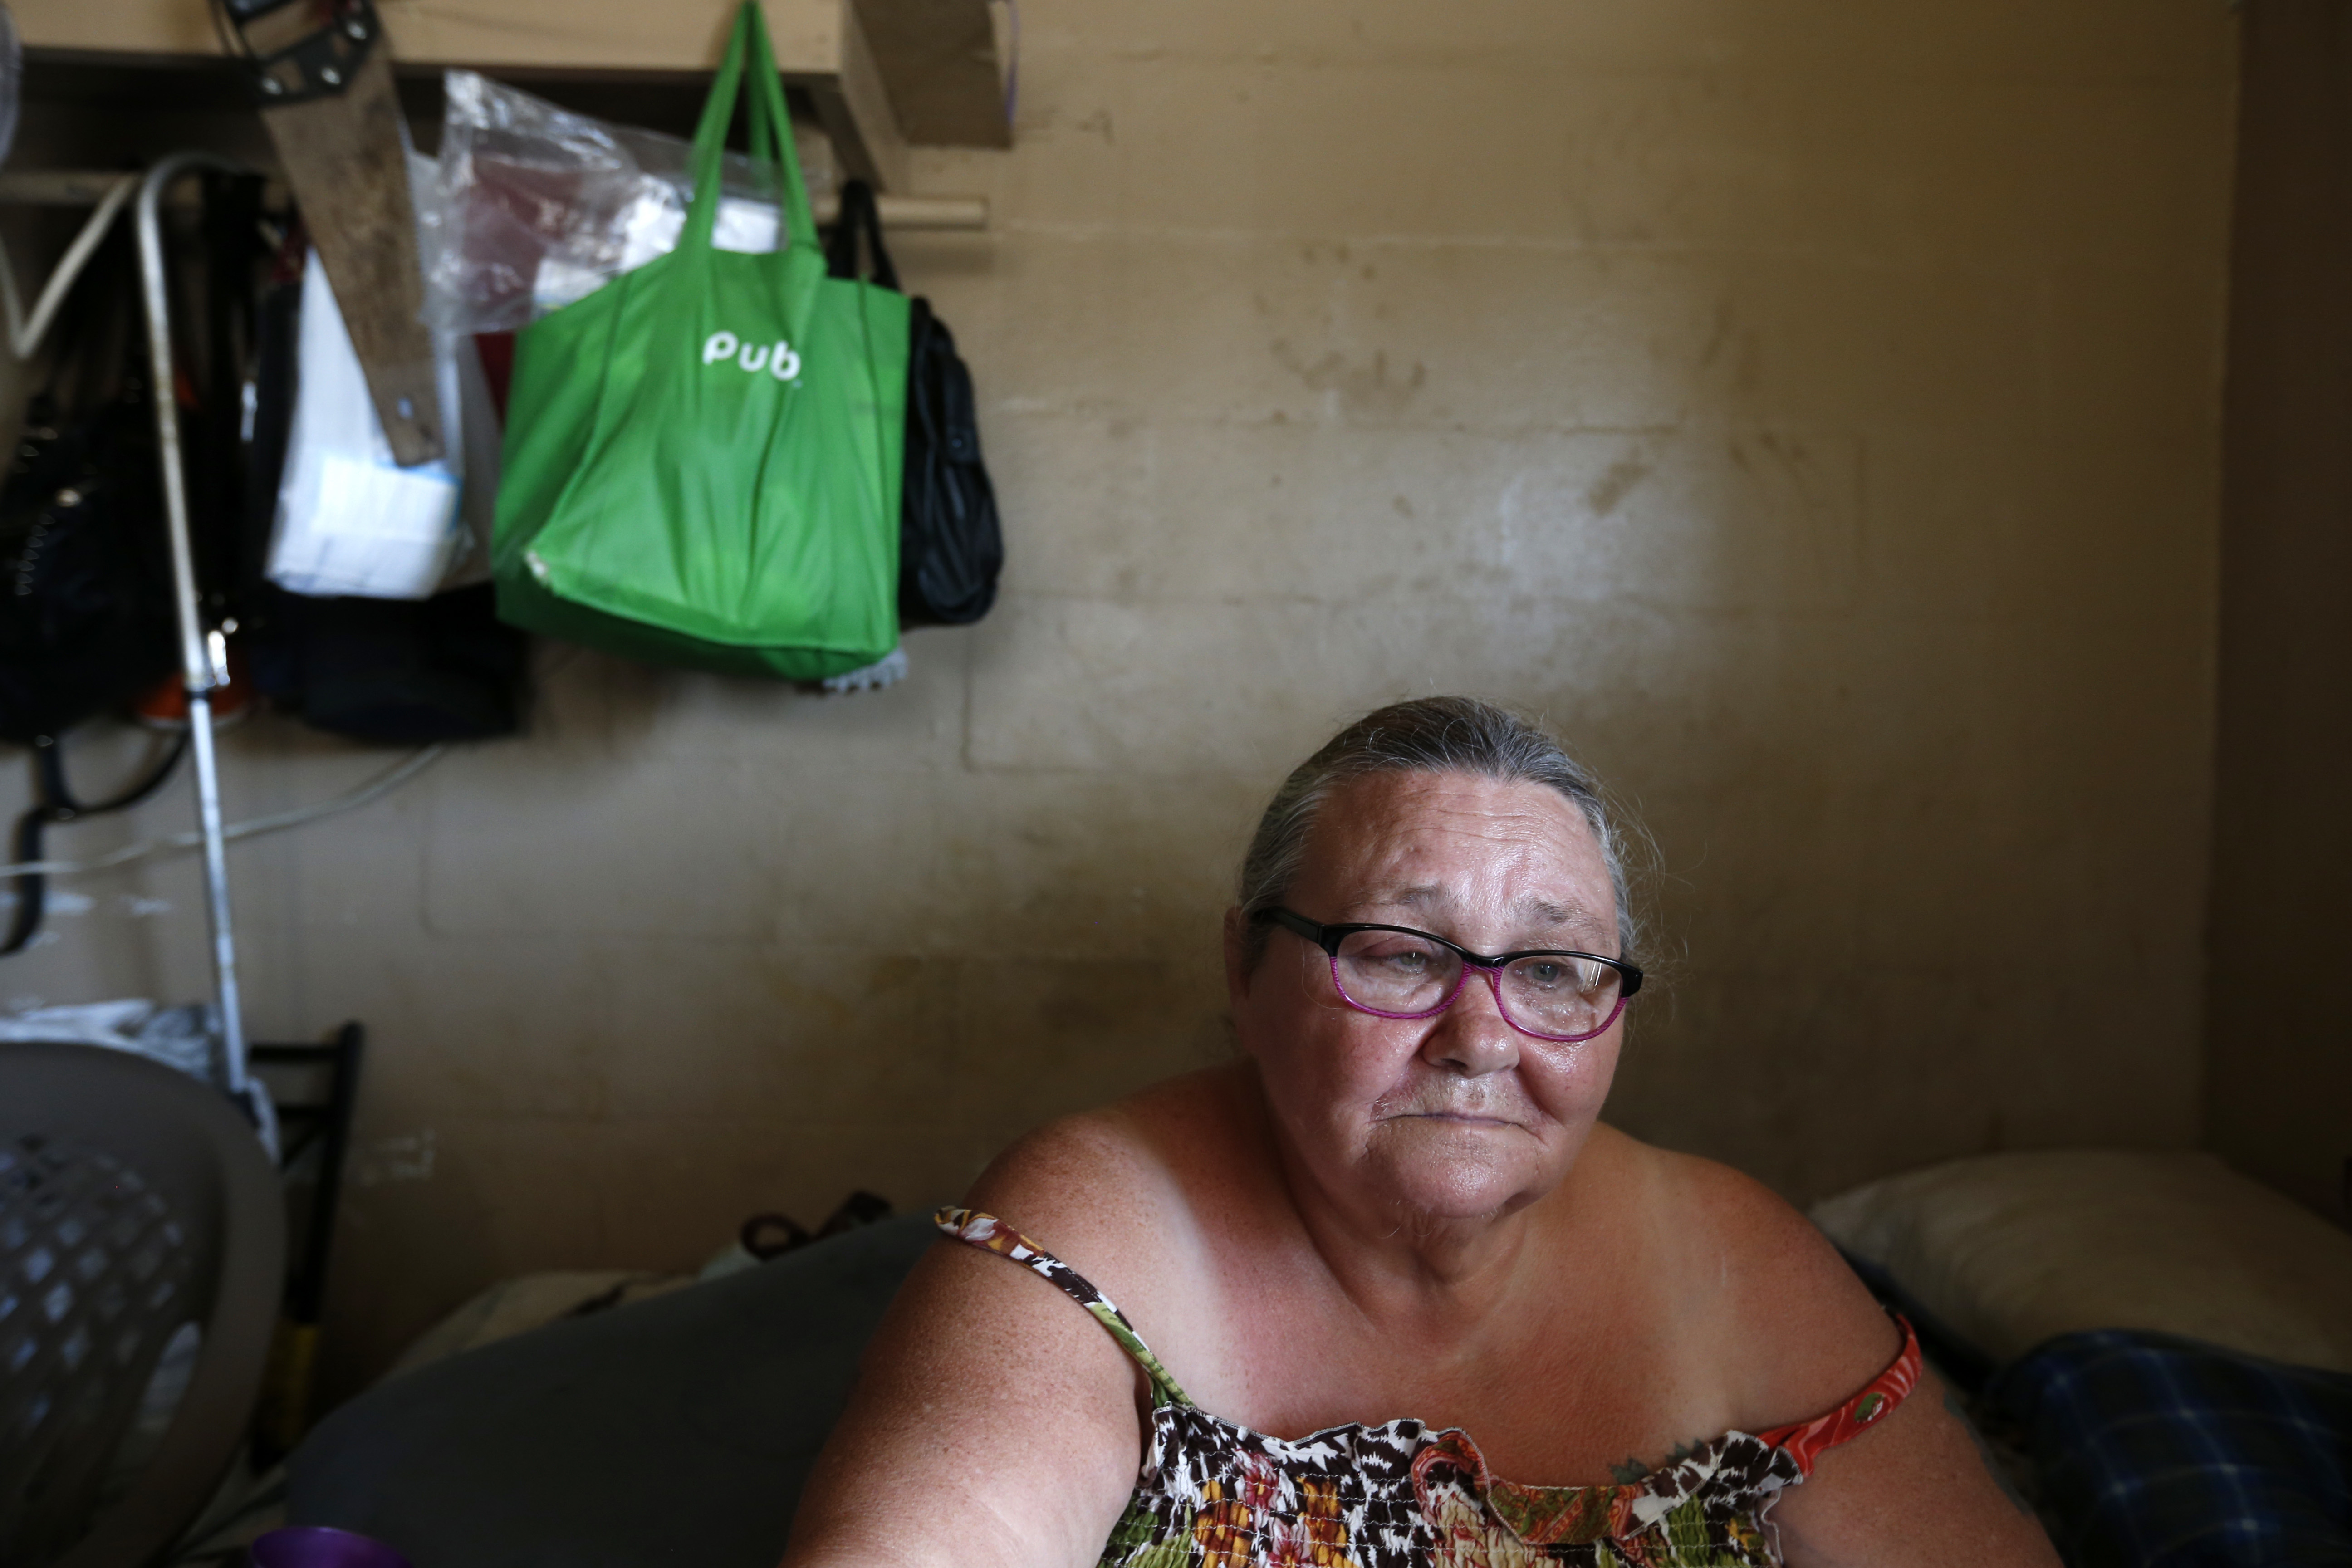 Irma The Poor-9 In this Sept. 12, 2017 photo, Pattie Deeley, who has asthma and other health problems which keep her on supplemental oxygen, sits in her small cinderblock apartment during a multi-day power failure in the aftermath of Hurricane Irma, in Immokalee, Fla. Unable to cook after the storm, Deeley said she had to spend extra money buying meals after Irma. (AP Photo/Gerald Herbert)